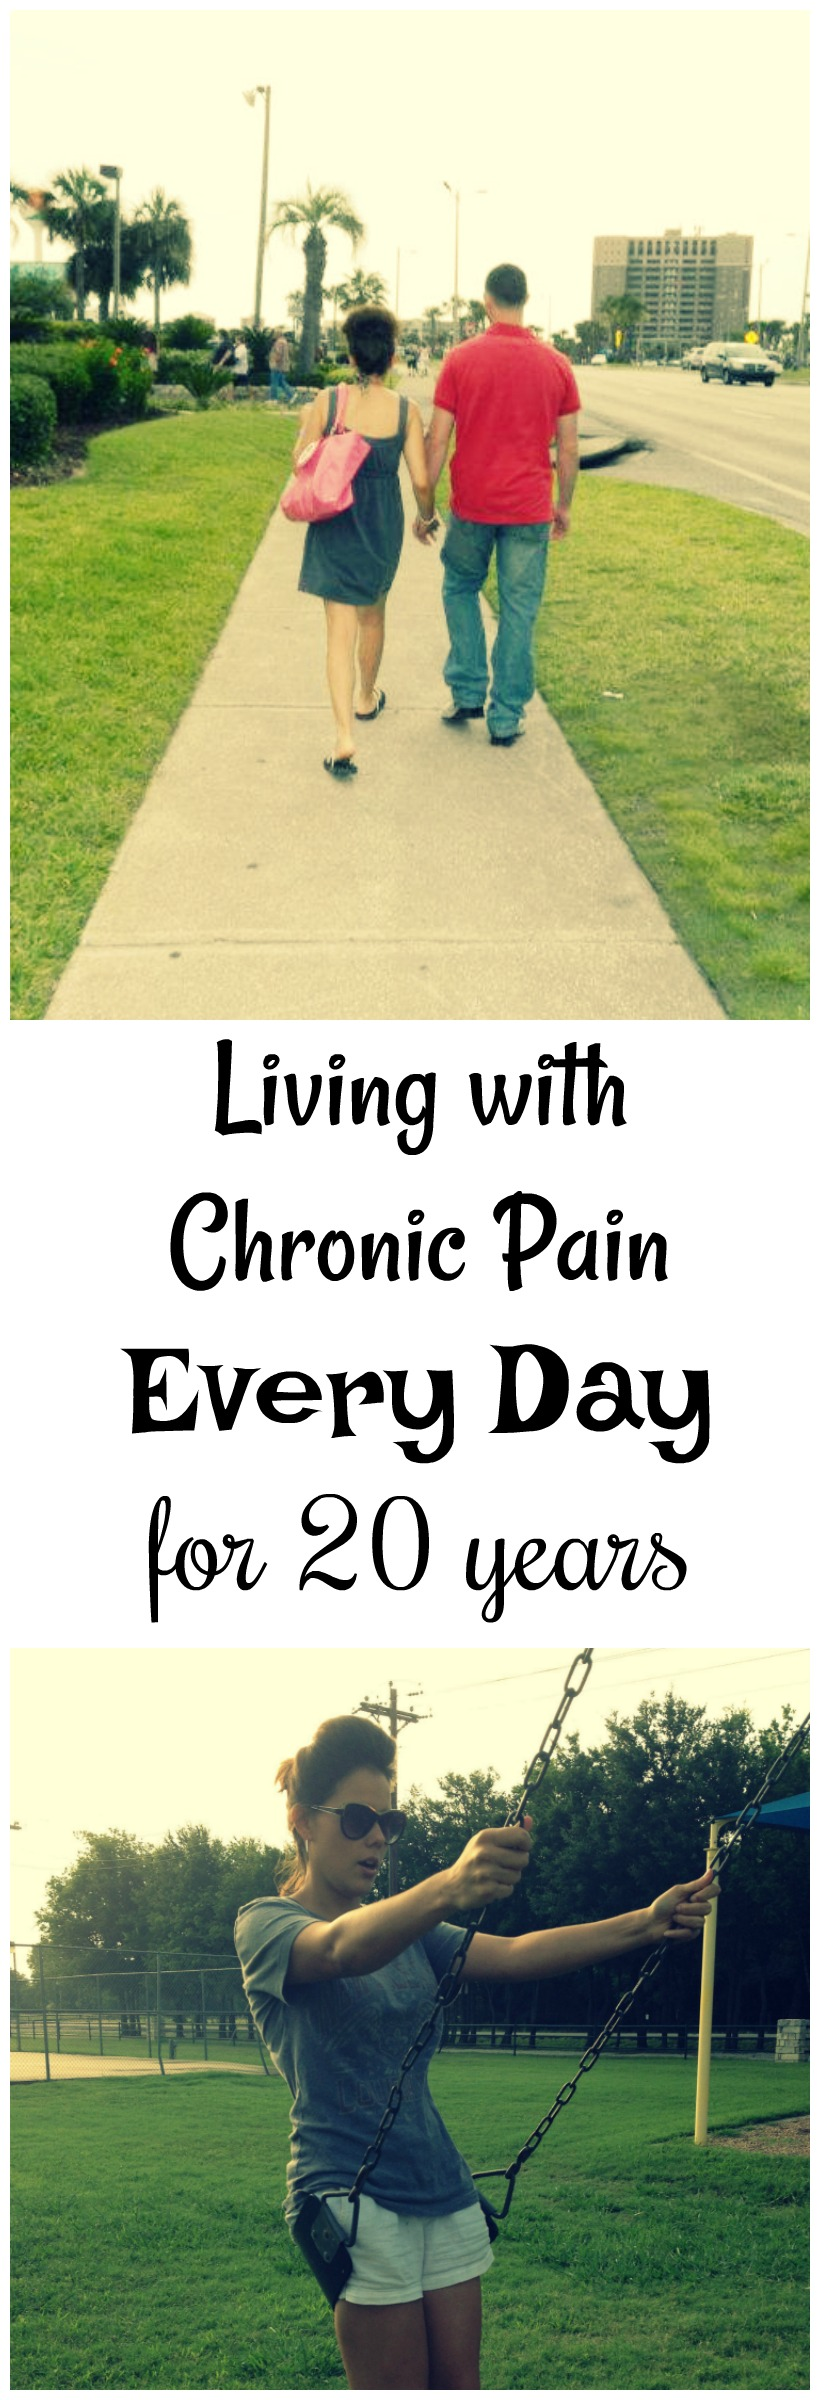 Living with Chronic Pain Every Day for 20 years. And you can get through it too on chemistrycachet.com